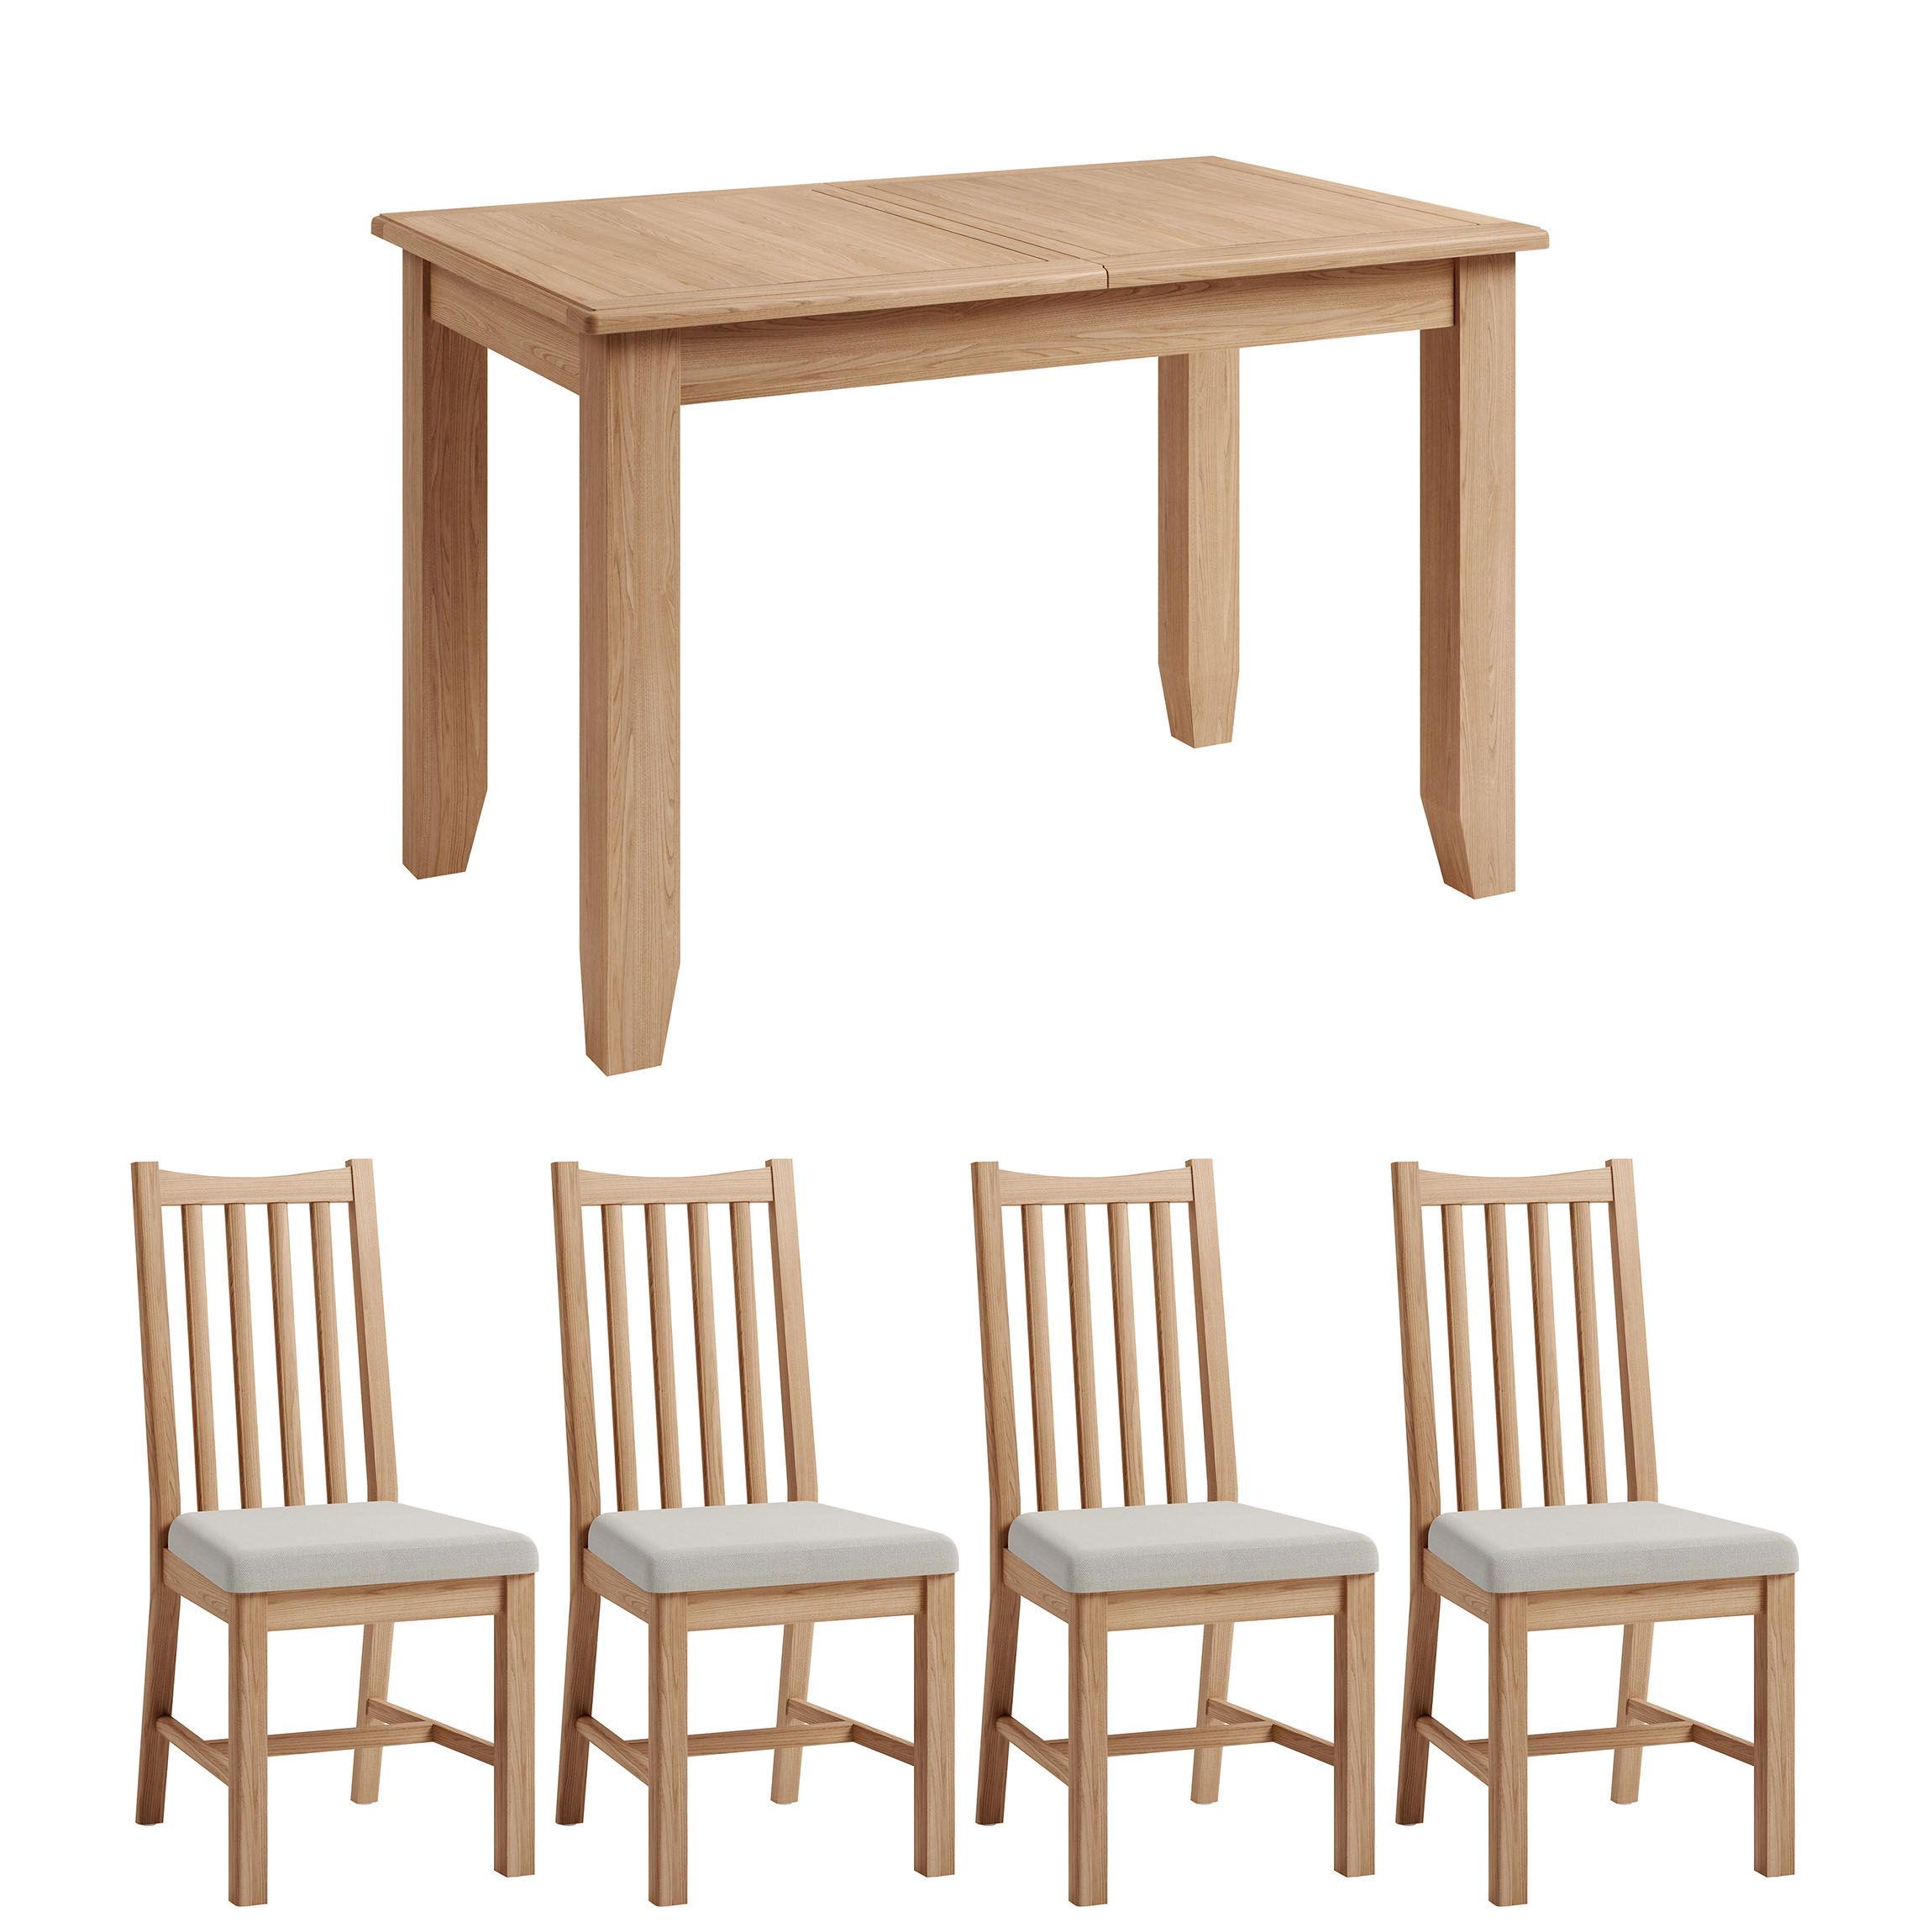 Hurstley 1.2m Table and x4 Chairs Dining Set